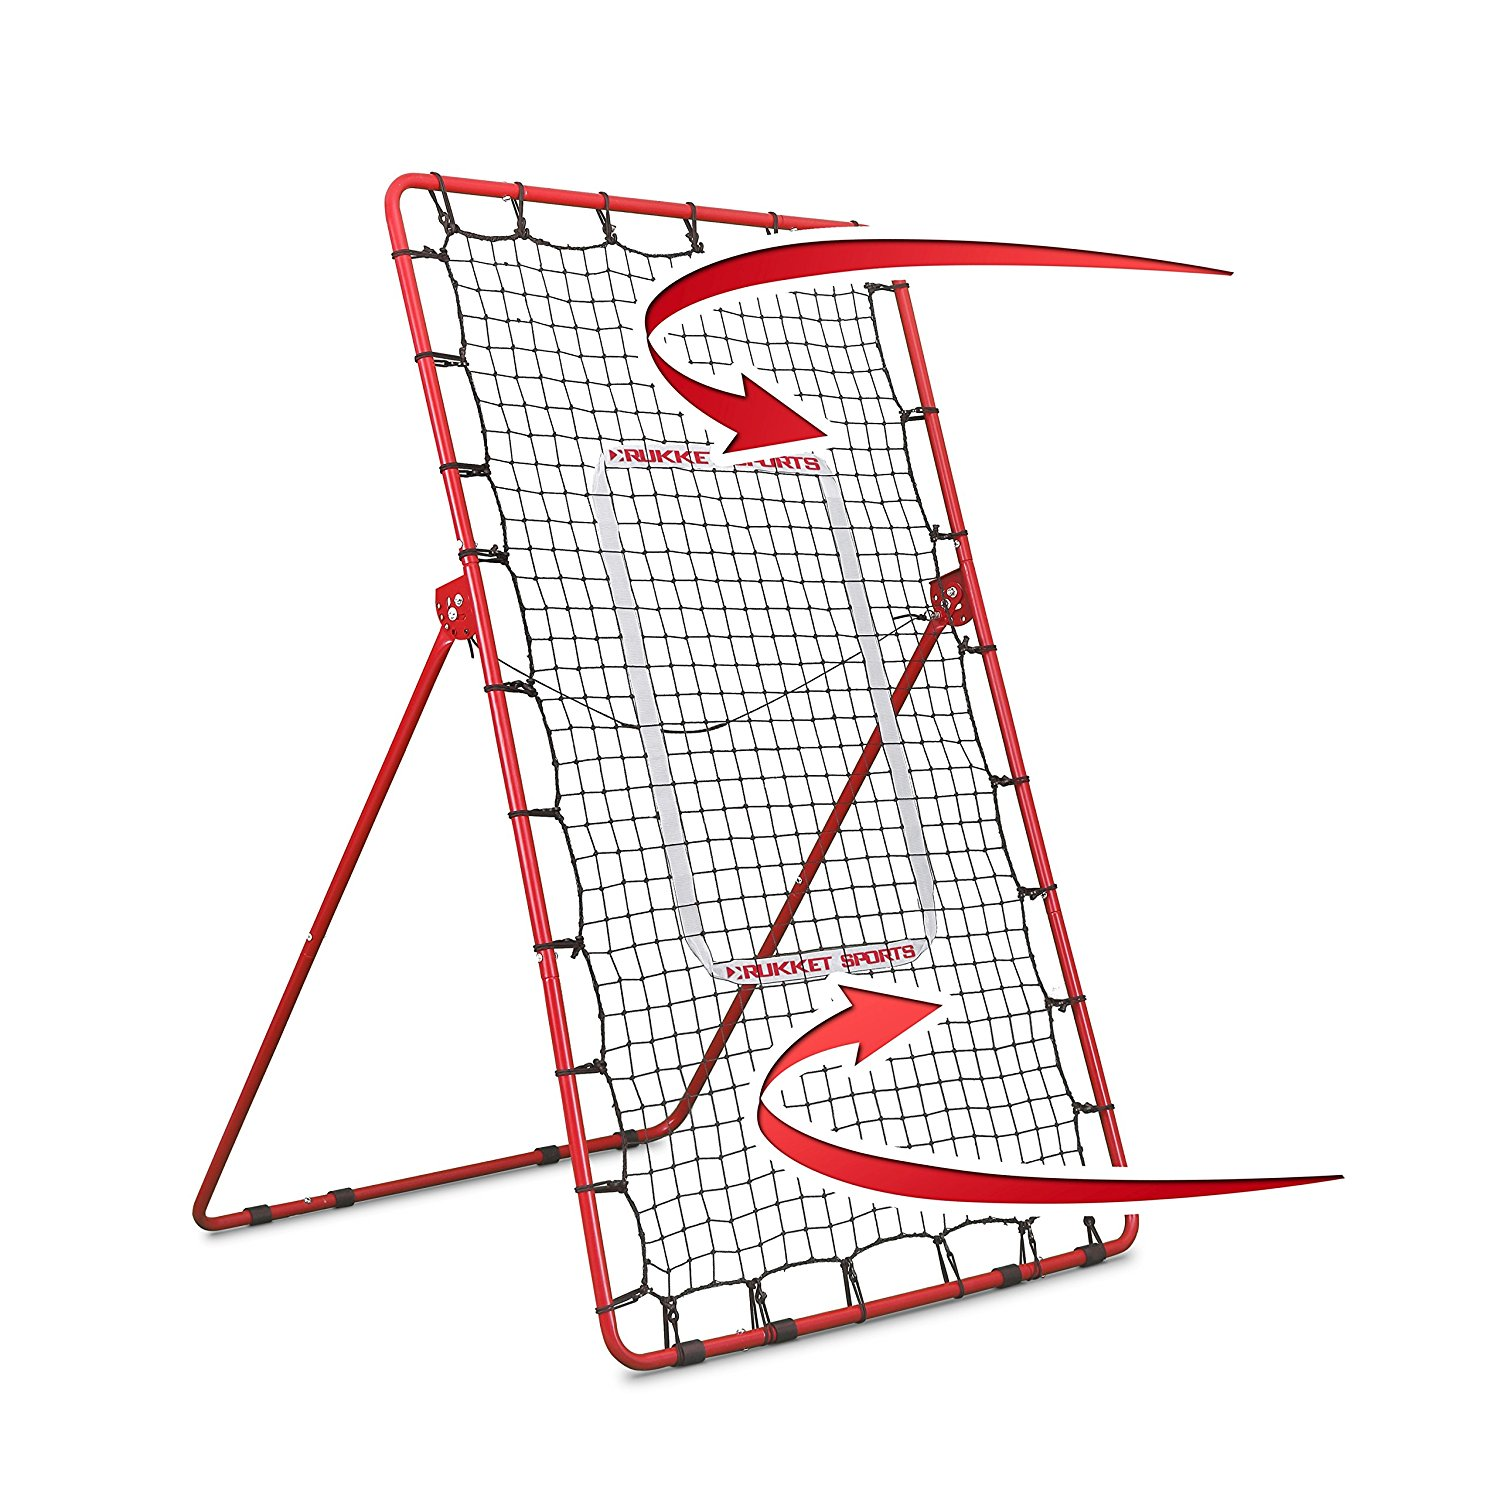 Rukket Pitch Back Baseball/Softball Rebounder | Pitching and Throwing Practice Partner | Adjustable Angle Pitchback Trainer